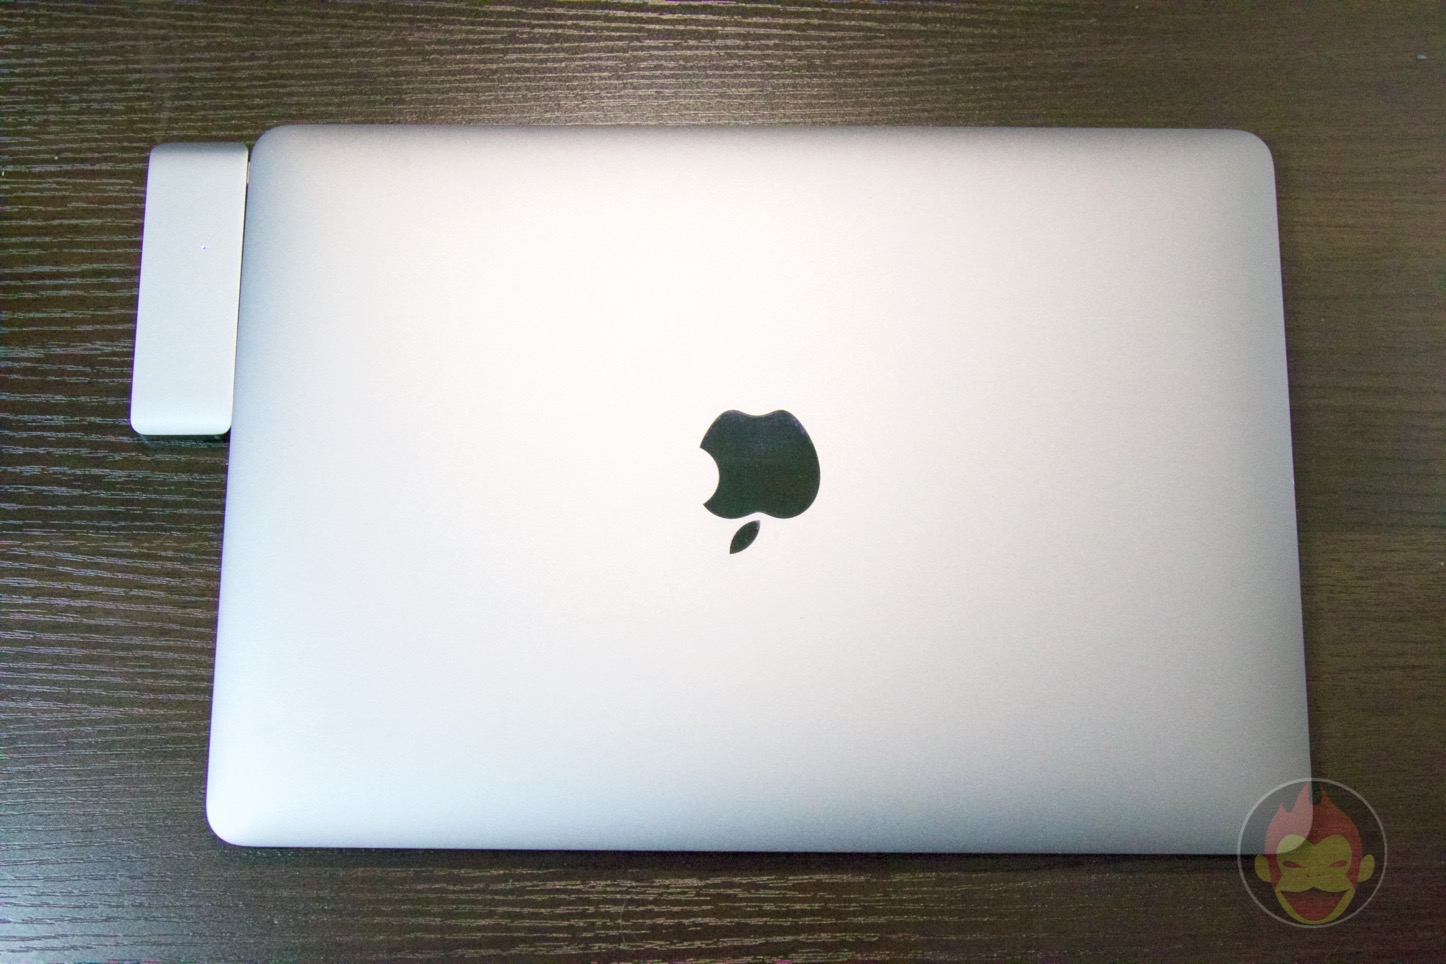 Satechi MacBook Type C 3in1